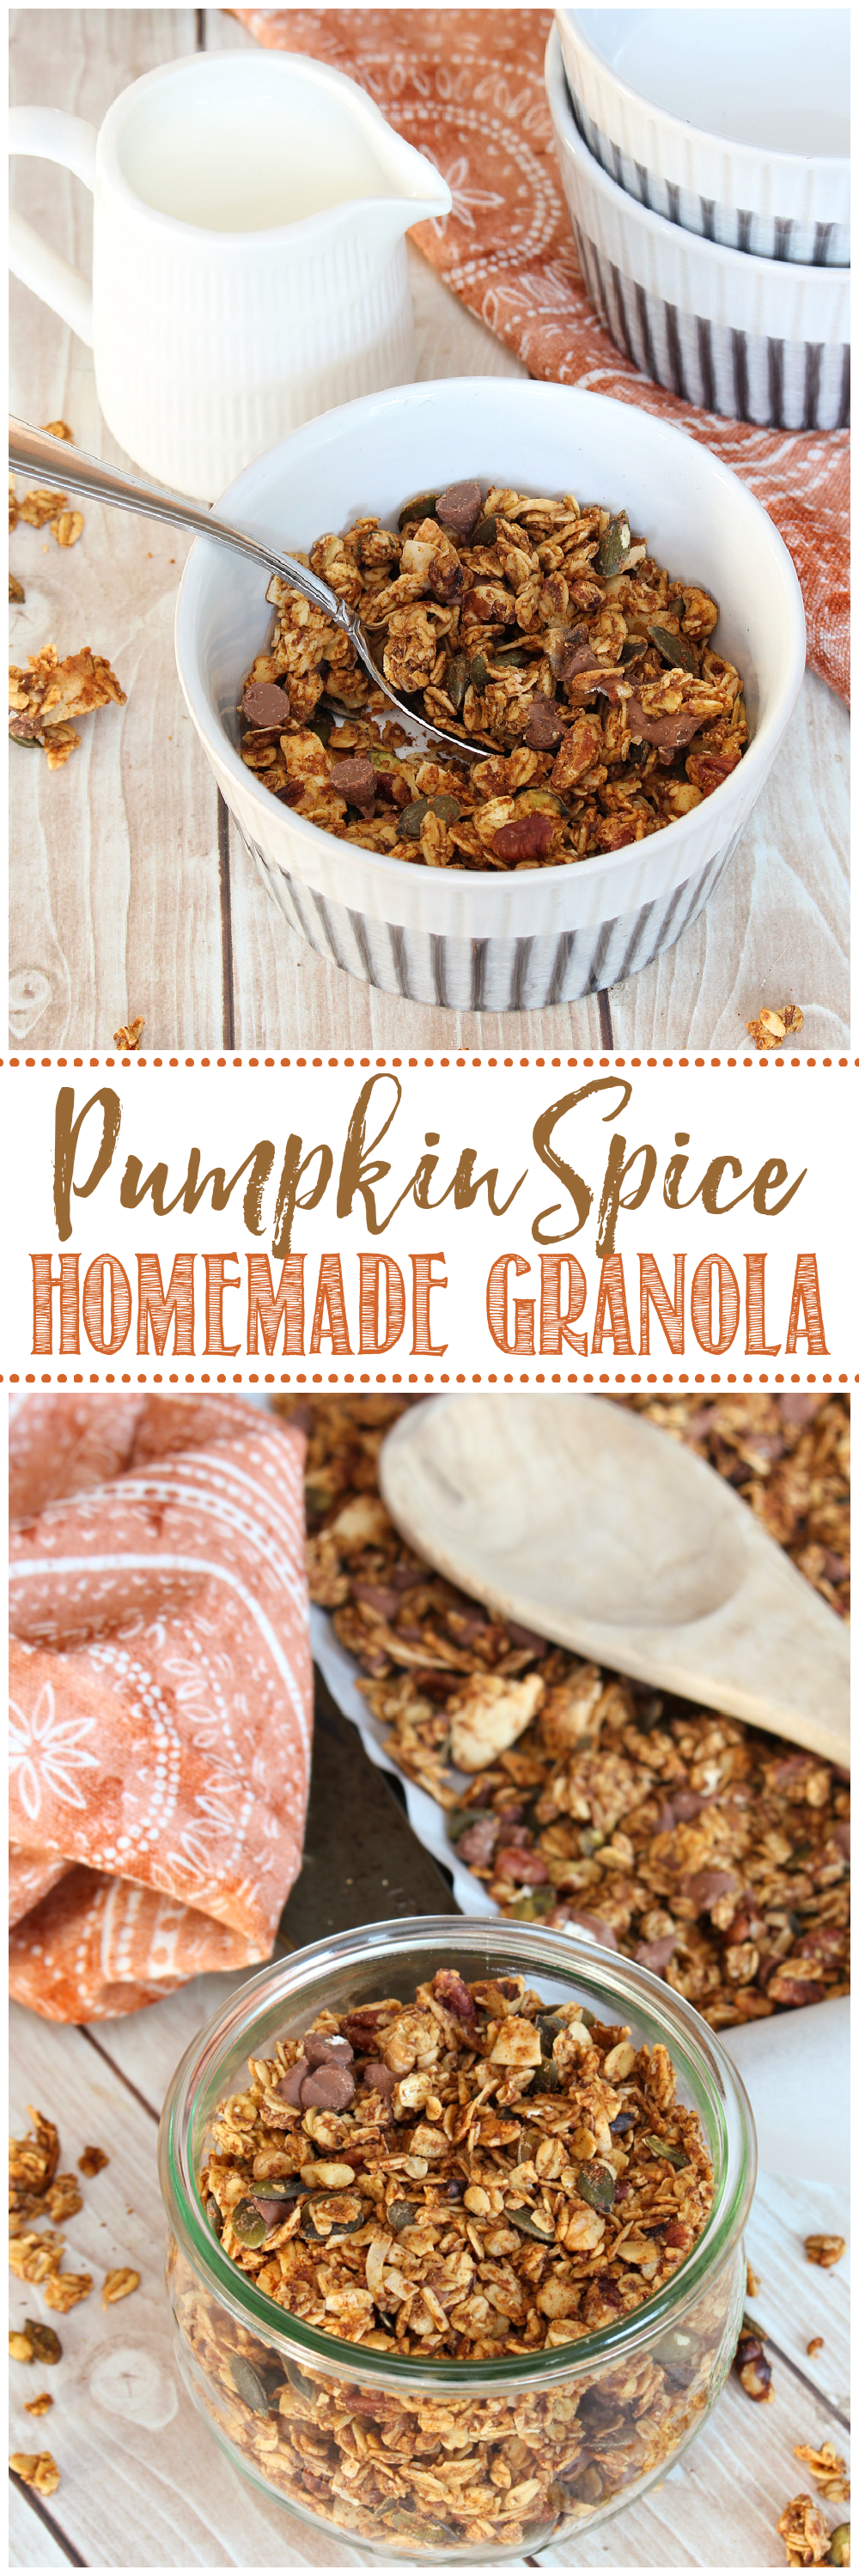 Pumpkin spice homemade granola in a bowl and Wick jar.